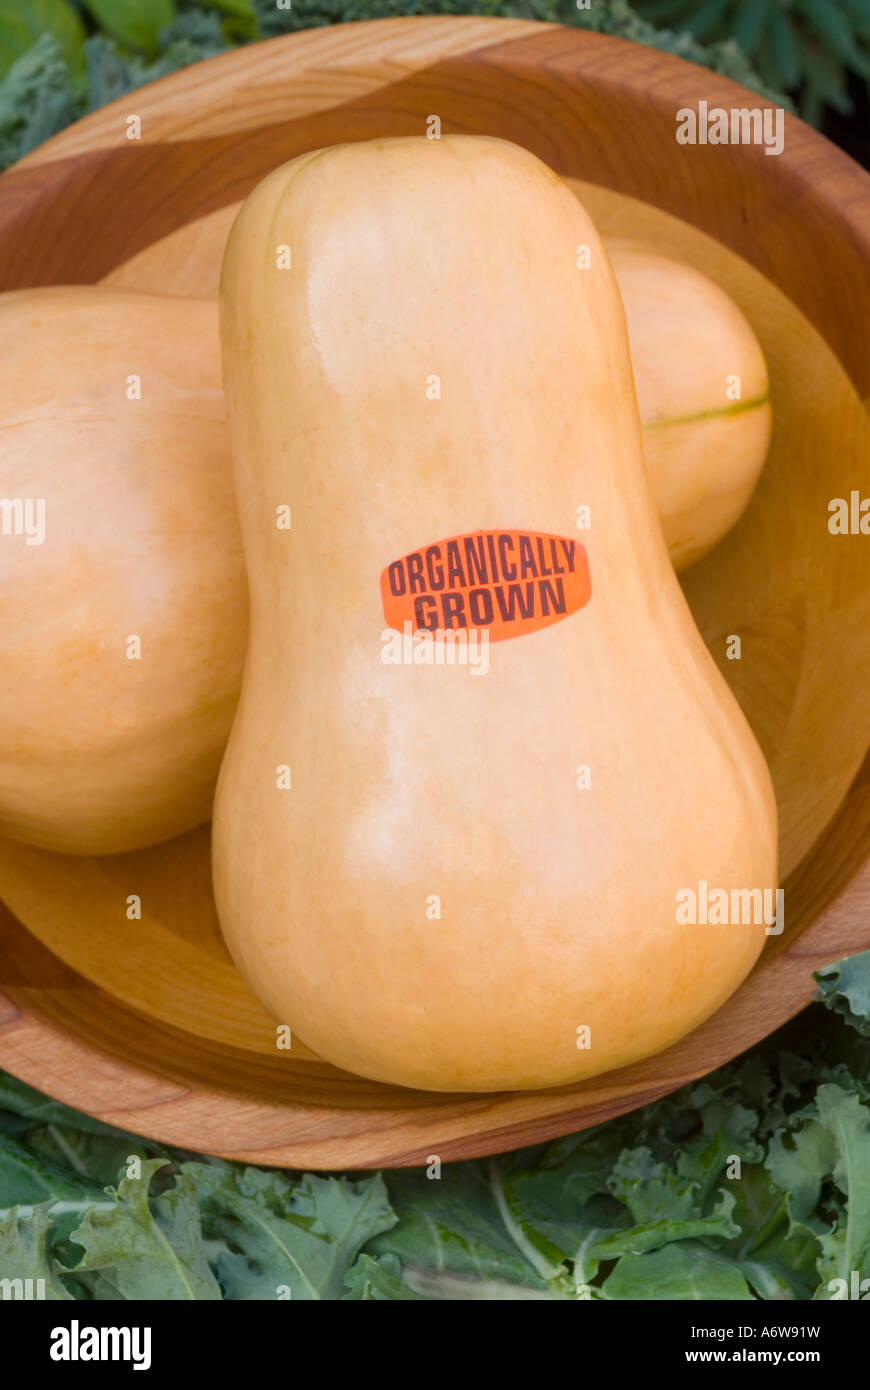 Organic Butternut squashes vegetables labeled labelled with sign organically grown harvested in wooden bowl. Cucurbita Stock Photo